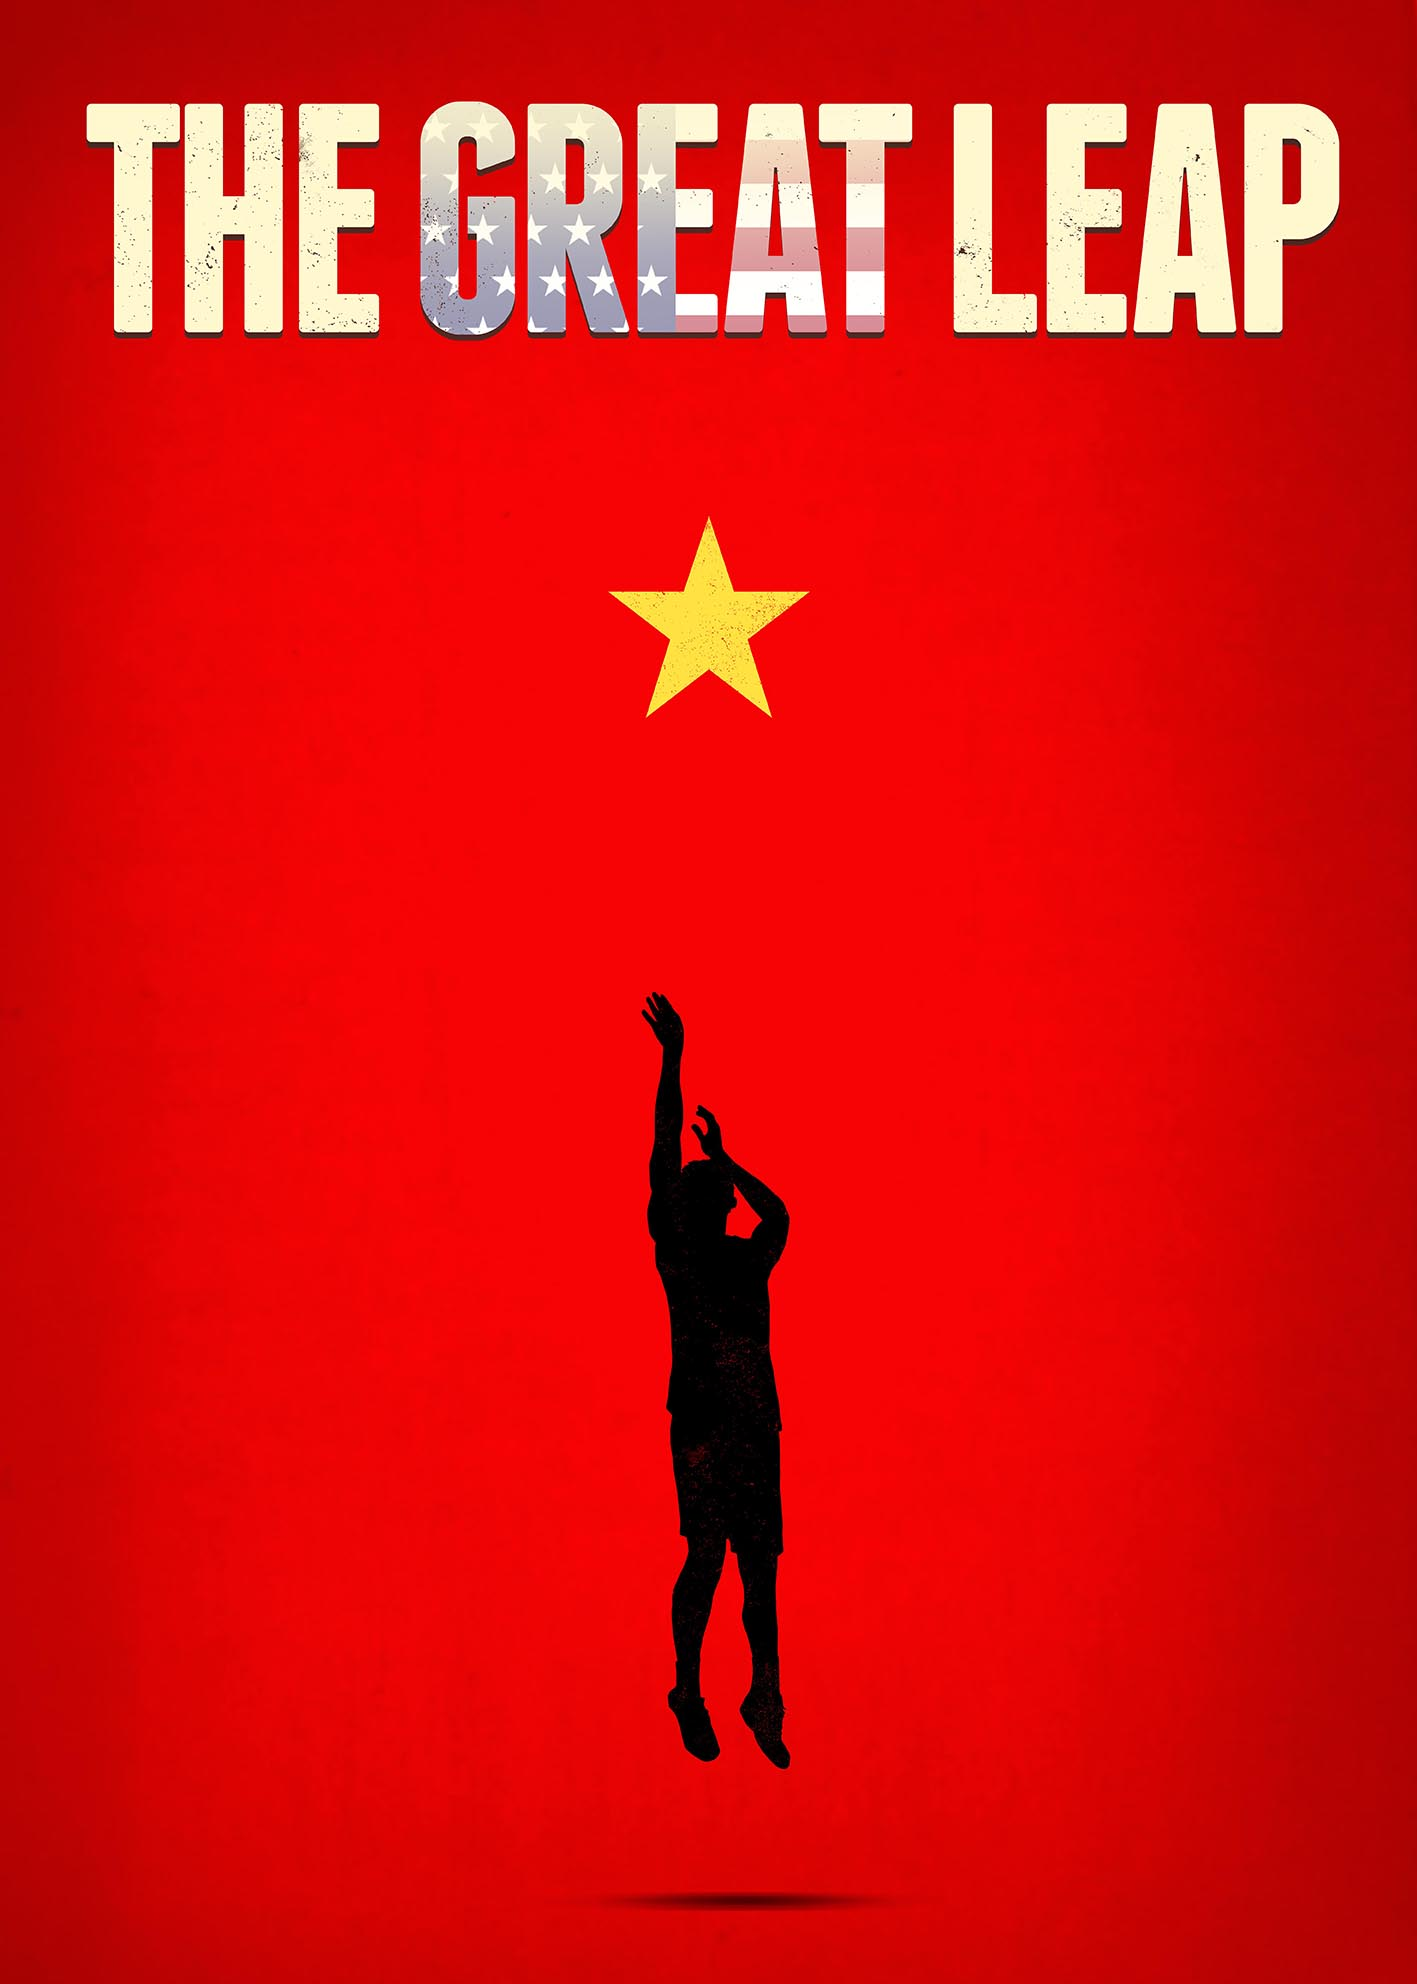 THE GREAT LEAP      Apr 23 - May 17     The Great Leap  is acclaimed Bay Area playwright Lauren Yee's comedic drama about a swaggering American basketball coach who brings his university team to Beijing for a 1989 exhibition game against a Chinese former protégé determined to prove himself. Their competition is upended by an ambitious Chinese-American high school star and the tragedy of the Tiananmen Square protests. Yee's story of political conflict, and the intricate, fractured links that immigration forges across cultures and generations, is moving and deeply relevant.  The Great Leap  is a co-production with Sarasota's Asolo Repertory Theatre, part of an ongoing partnership with one of the leading theaters in the Southeast.